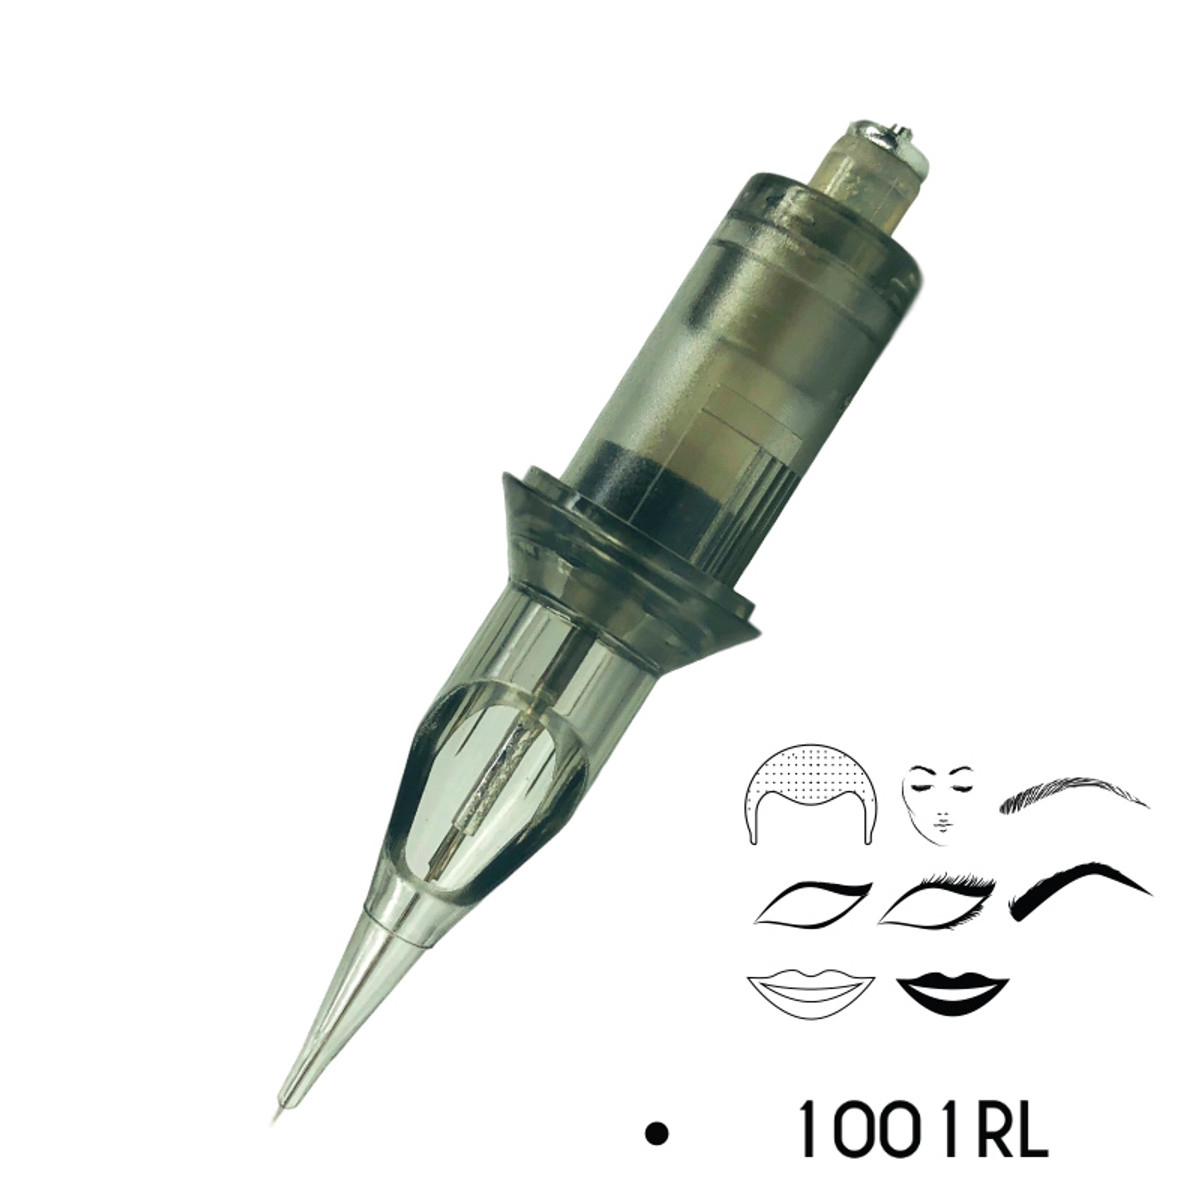 Dermo Power Permanent Makeup (PMU) Needle 1001RL